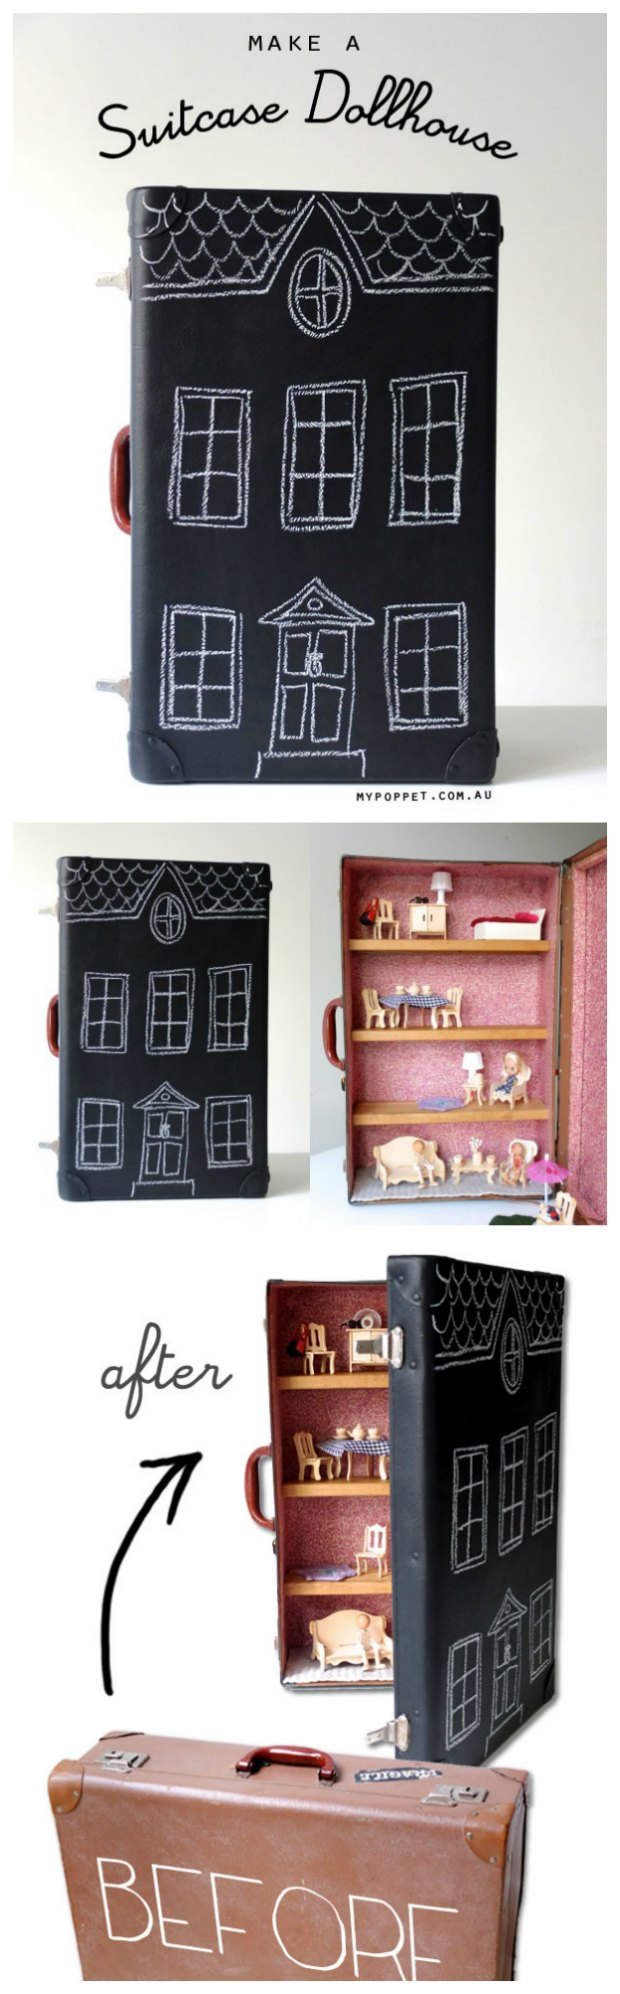 How to turn an old suitcase into a portable dolls house.